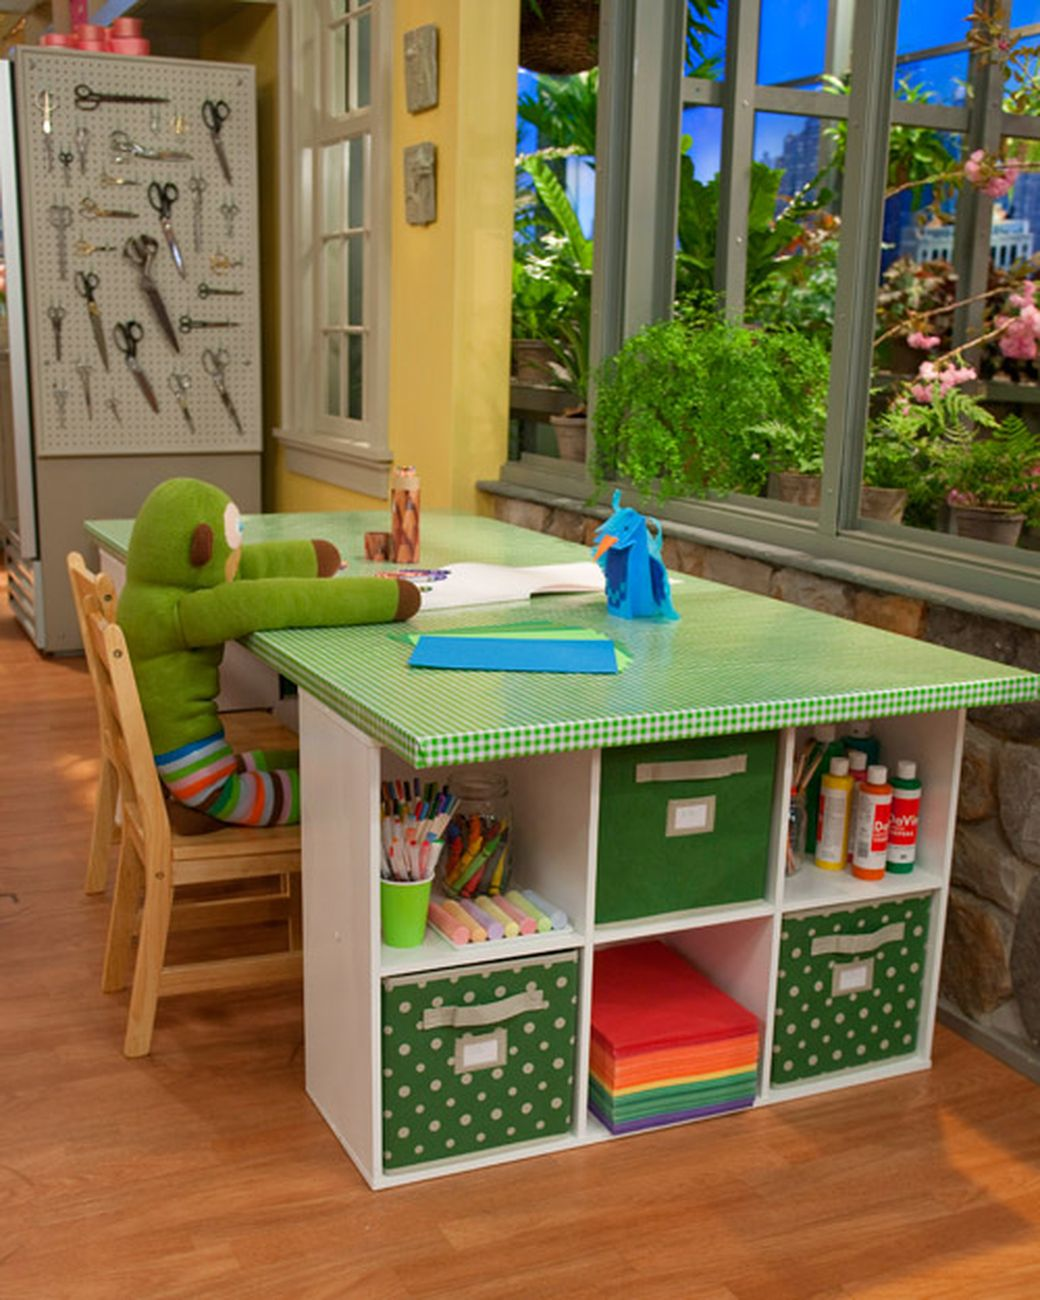 25+ Creative DIY Projects to Make a Craft Table --> Colorful Crafting Table